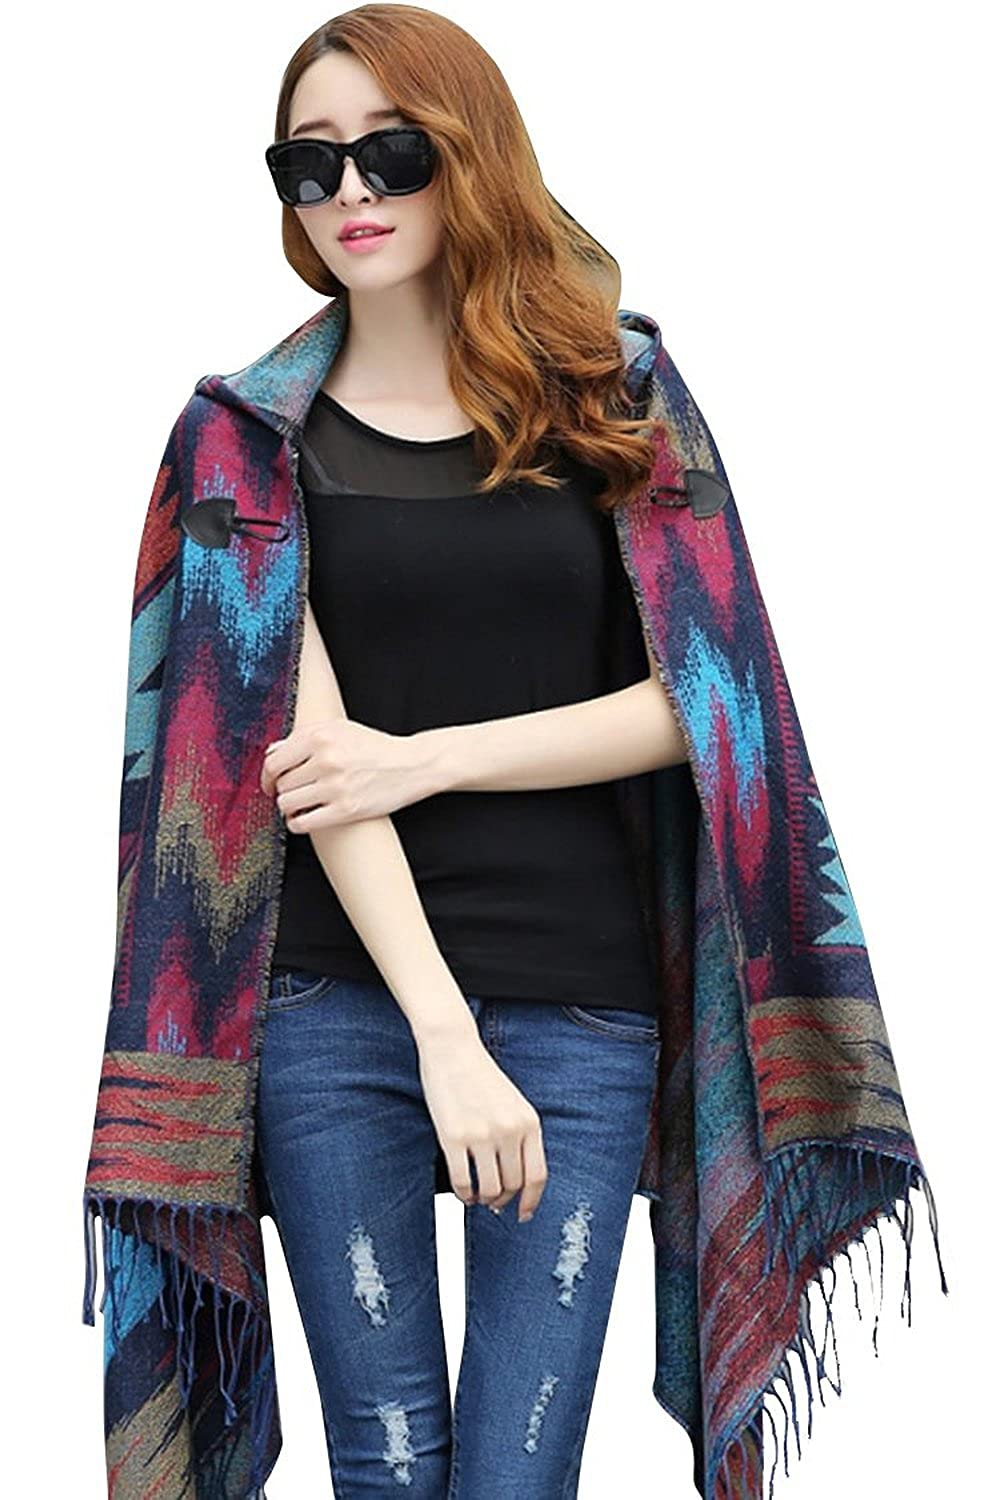 Forlisea Womens Bohemian Casual Collar Poncho Capes Shawl with hooded